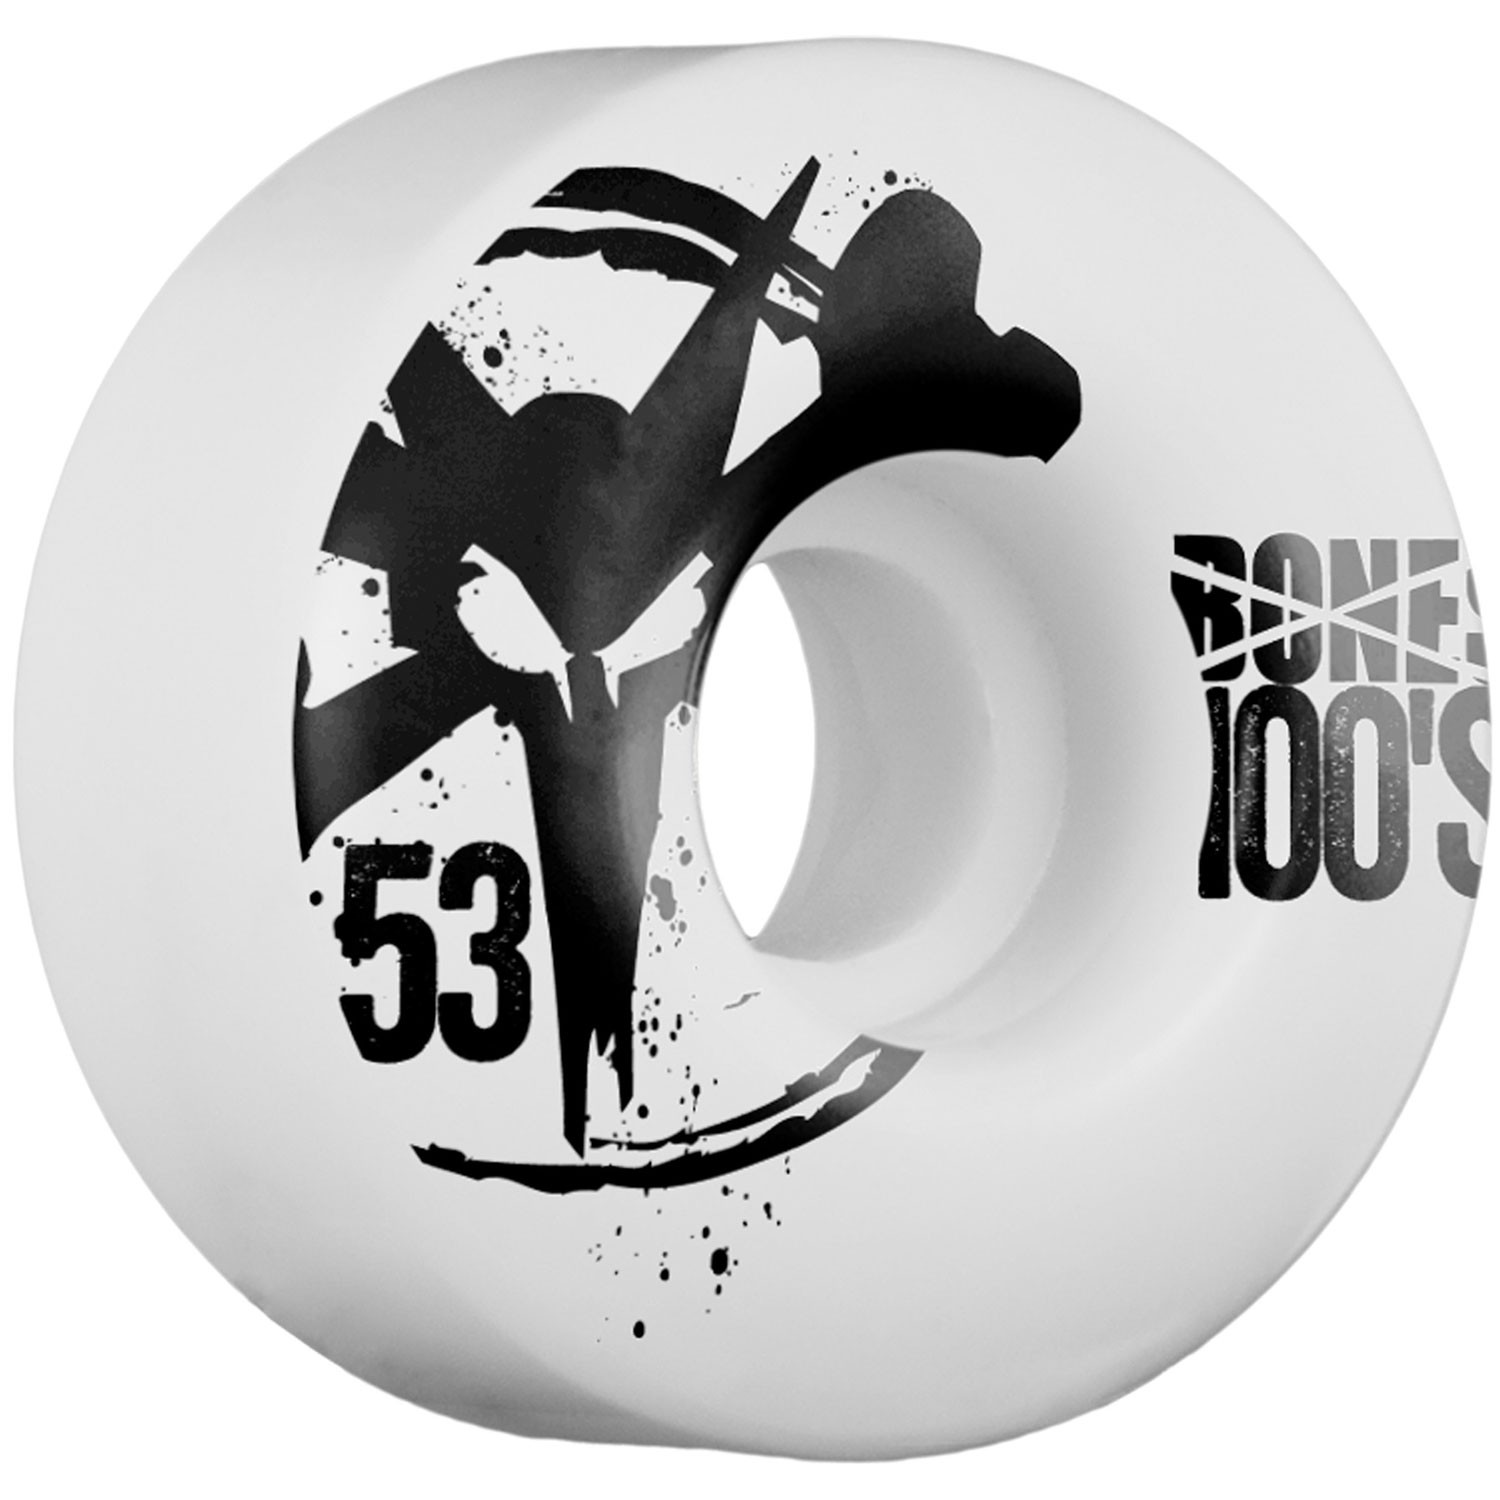 Bones 100s Skateboard Wheels 53mm 100a - White